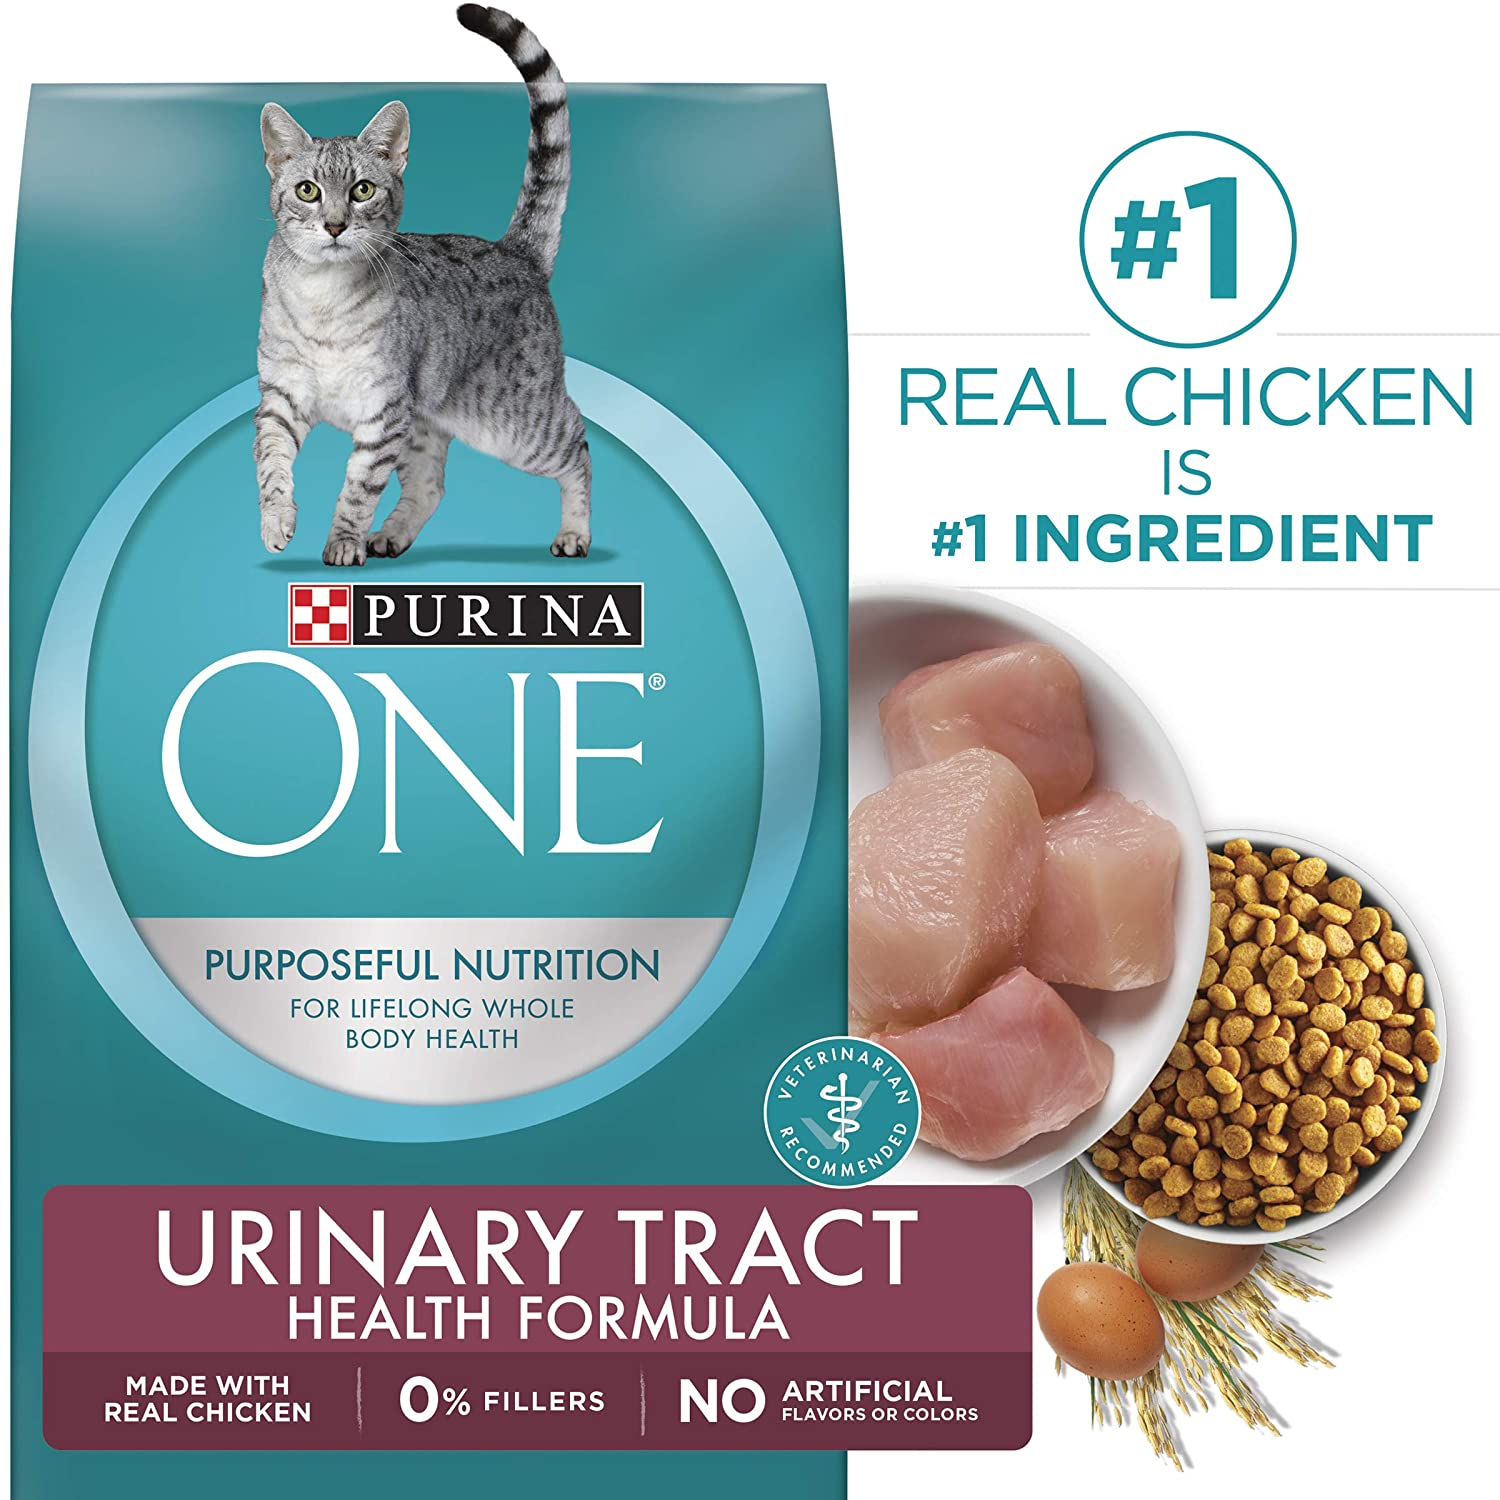 16 LB Purina ONE Dry Cat Food, Urinary Tract Health Formula, 16-Pound Bag, Pack of 1